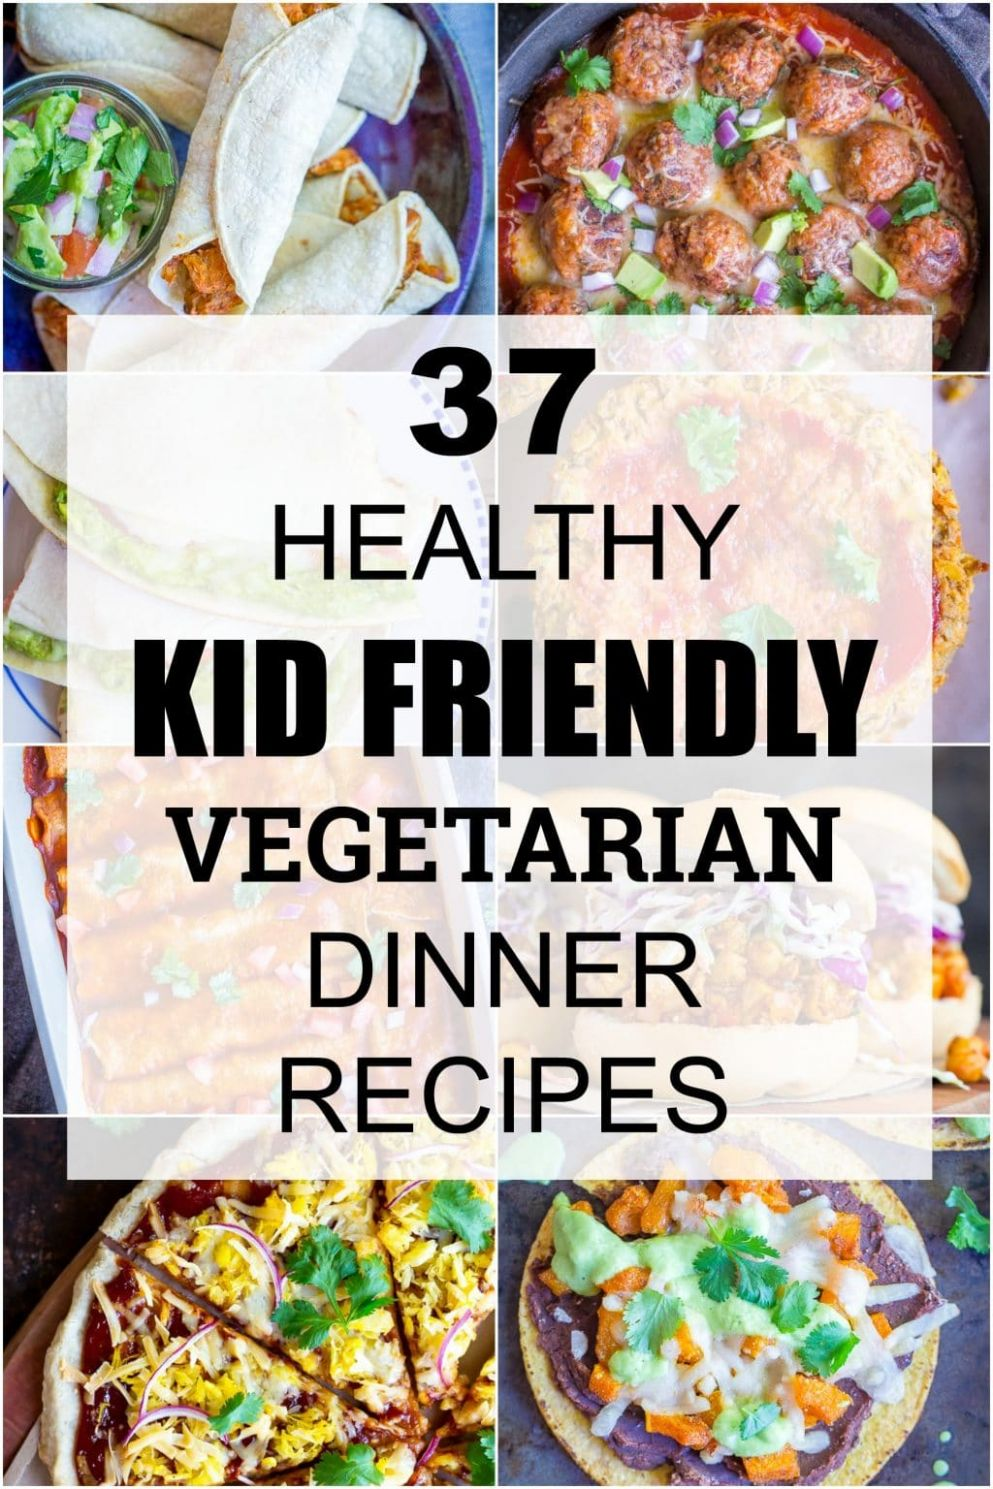 10 Healthy Kid Friendly Vegetarian Dinner Recipes - She Likes Food - Dinner Recipes Healthy Vegetarian